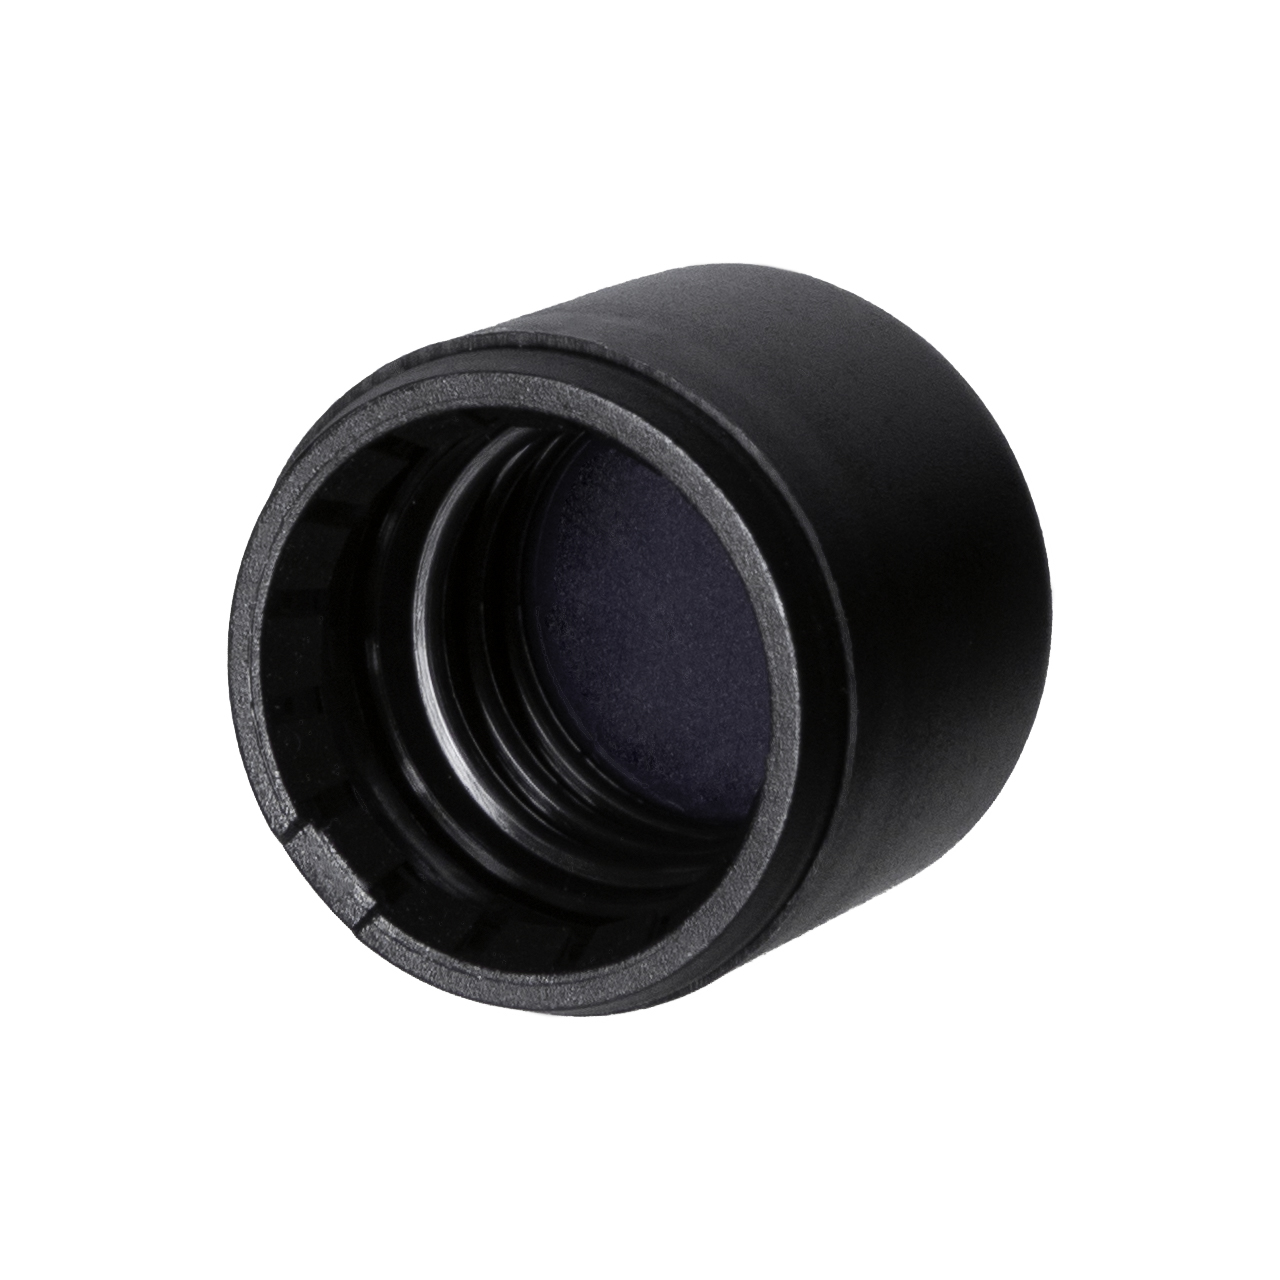 Tamper-evident closure DIN18, series IIID, PP, black matt with violet Phan inlay (for Orion 5-100 ml)